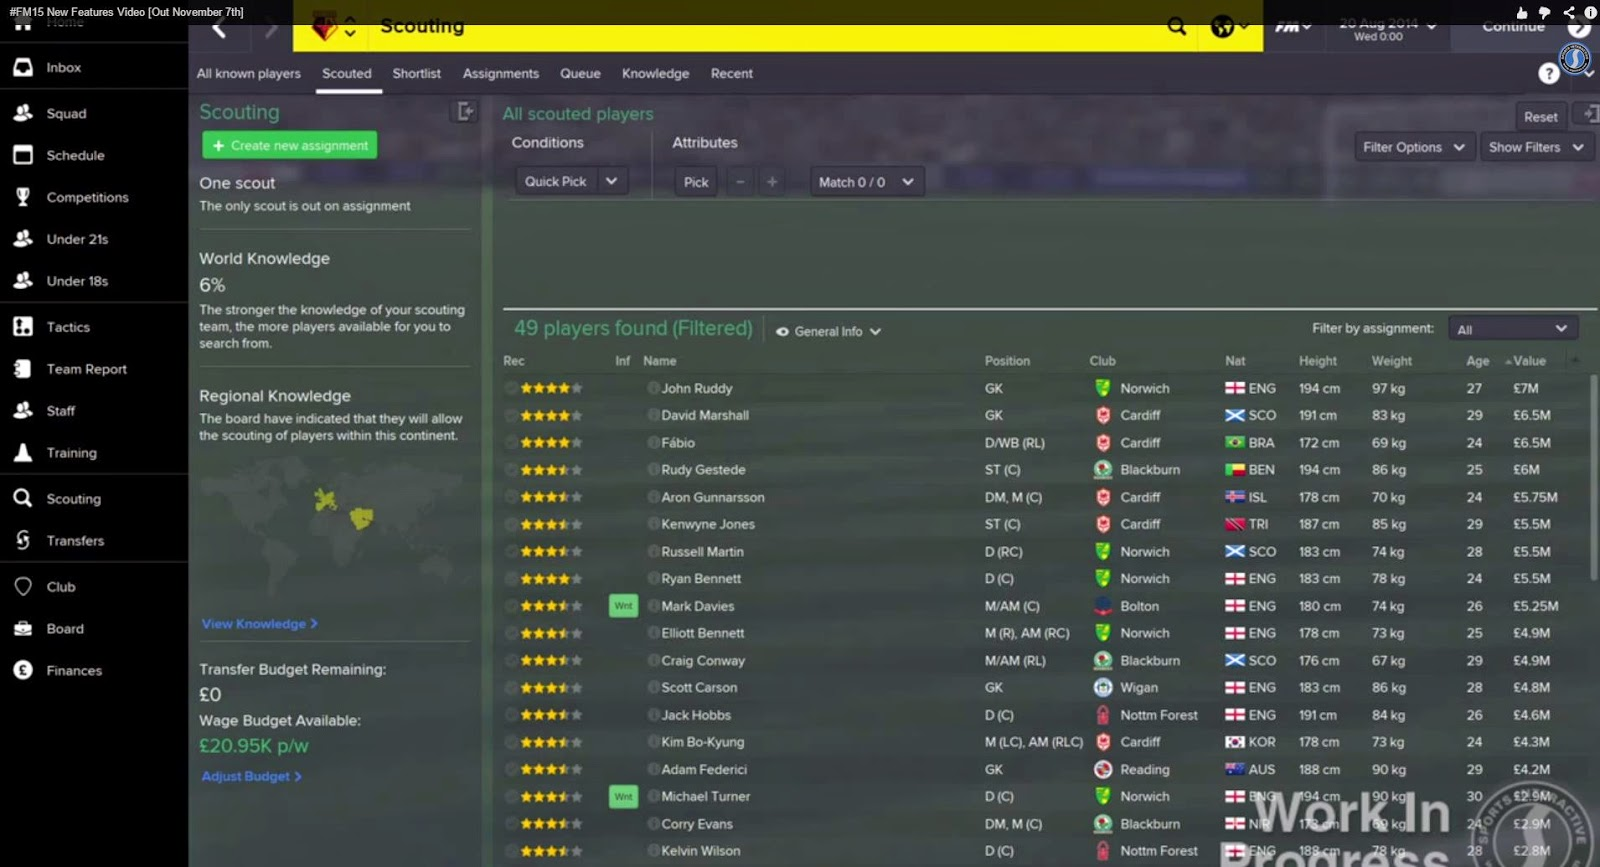 football manager 2015 features player search